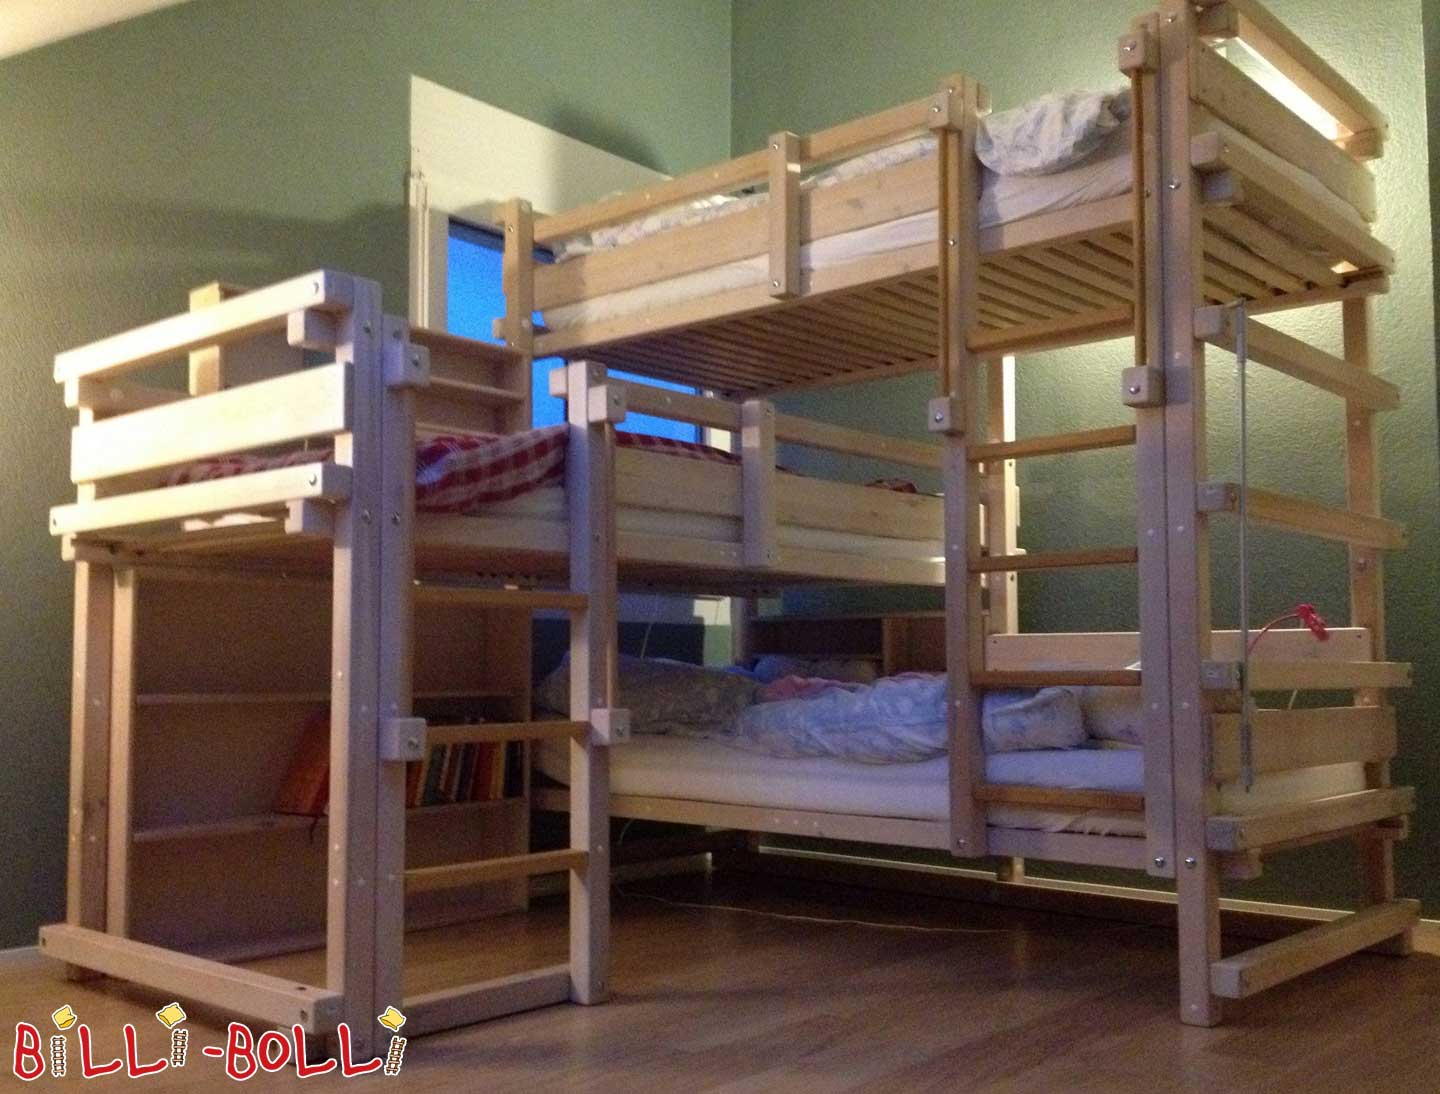 Triple bed, 90 x 200 cm, pine white glazed (second hand kids' furniture)